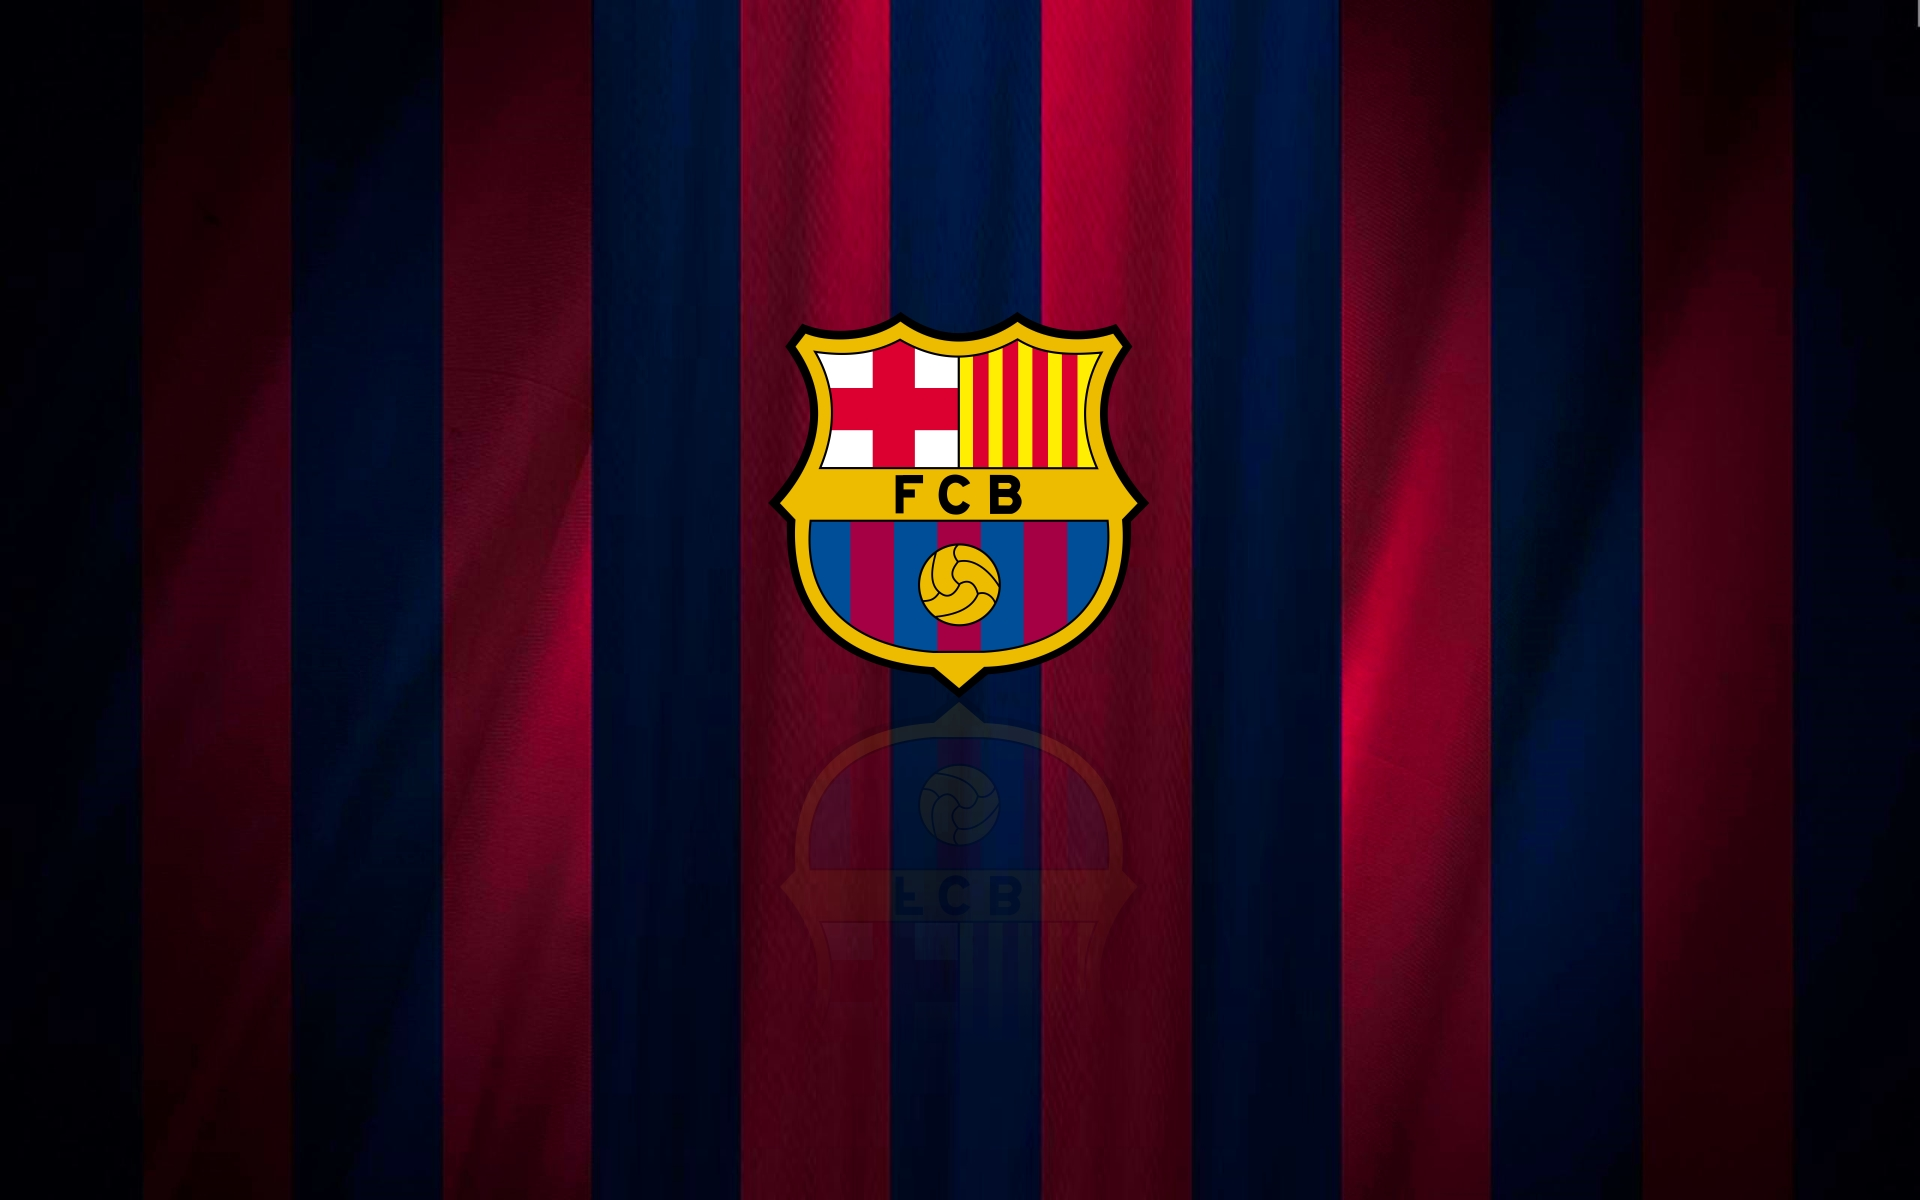 fc barcelona logos download fc barcelona logos download